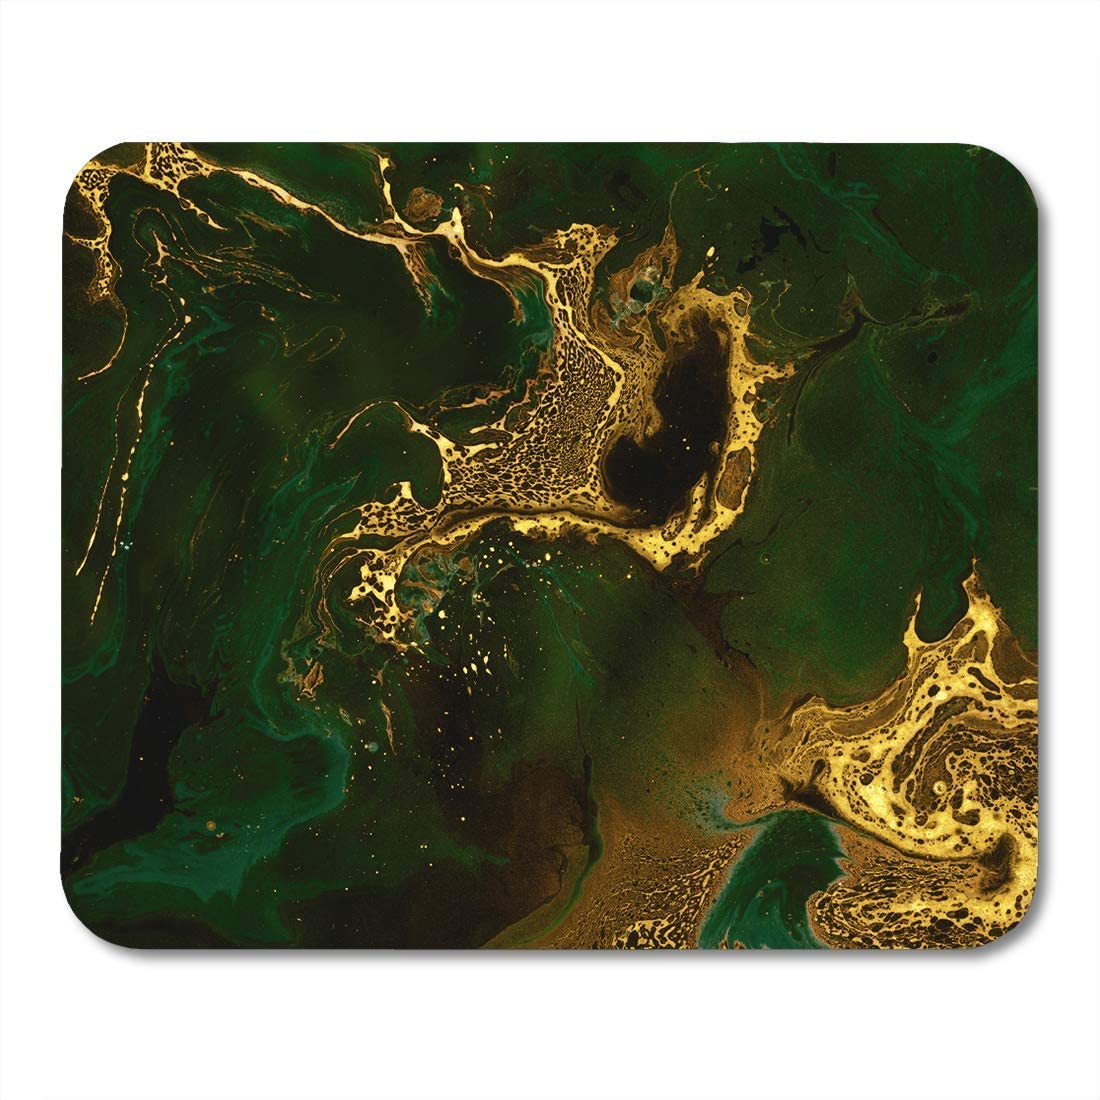 SYMSPAD Mouse Pads Green Gold Emerald and Golden Mixed Paints Creative Technique Marble Watercolor Water Mousepad 8.6 X 7.1 in for Laptop,Desktop Computers Accessories Mini Office Supplies Mouse Mats